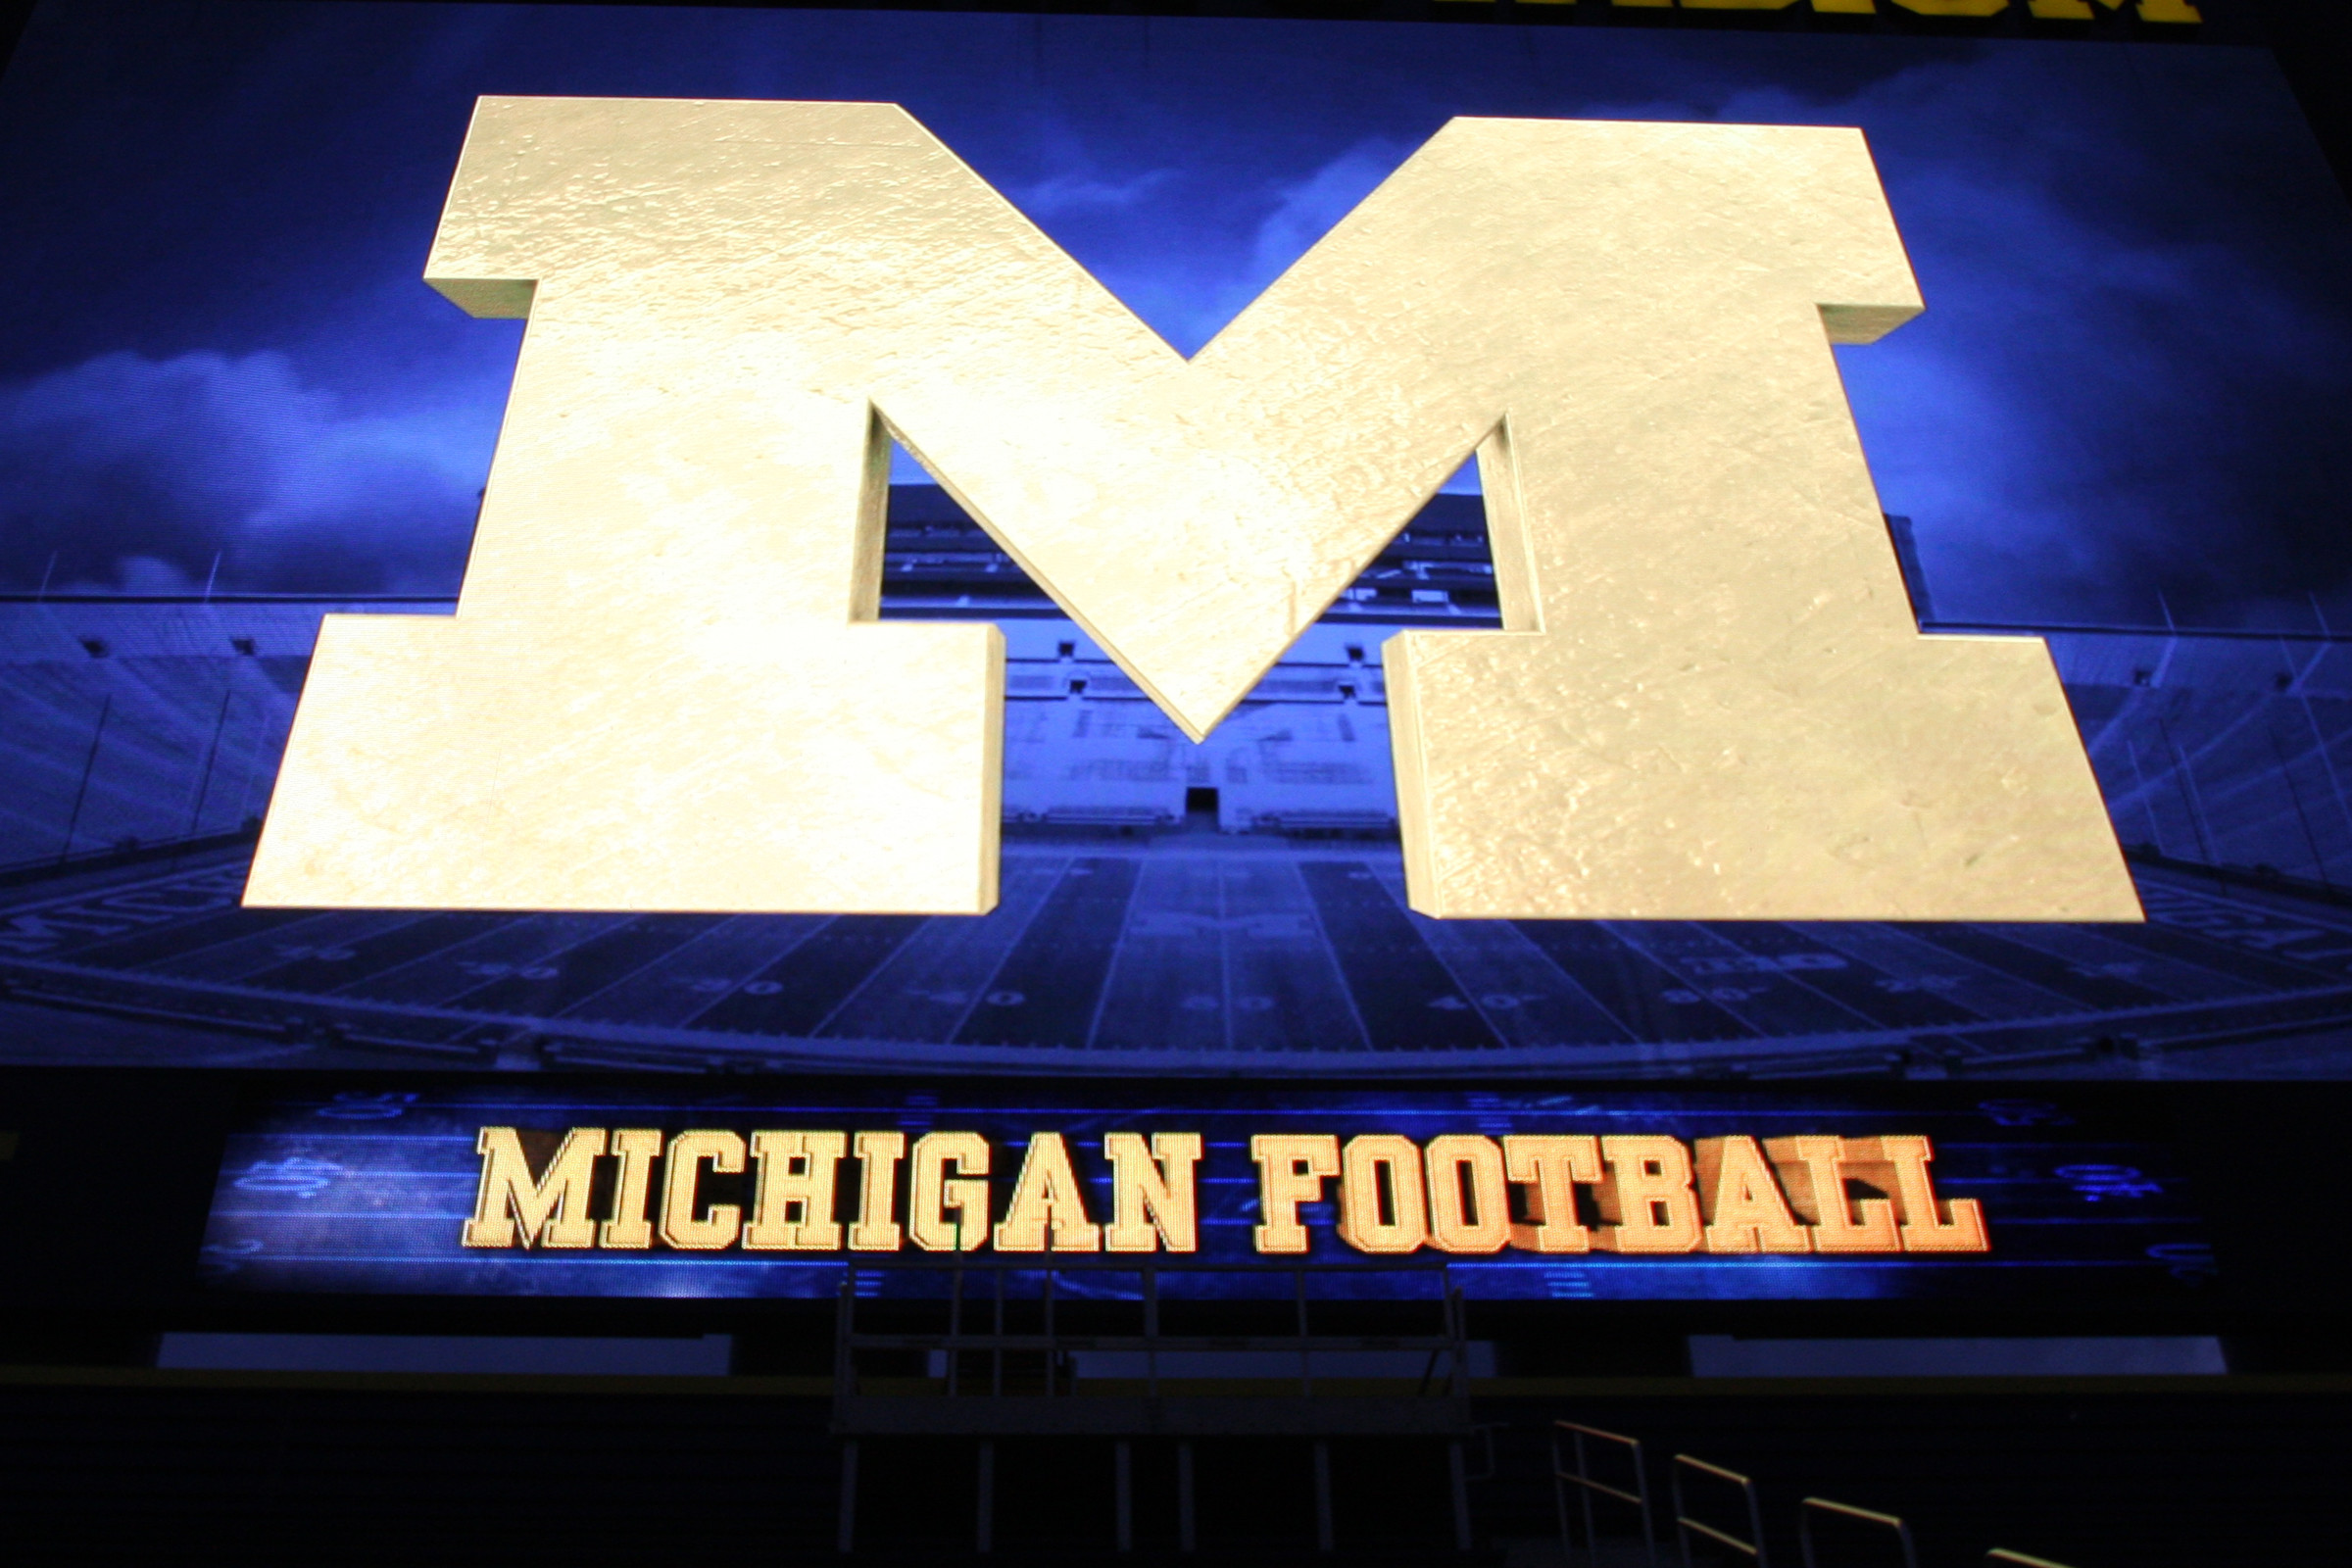 2400x1600 Michigan Football Image Wallpaper | Wallsev.com - Download Free HD .